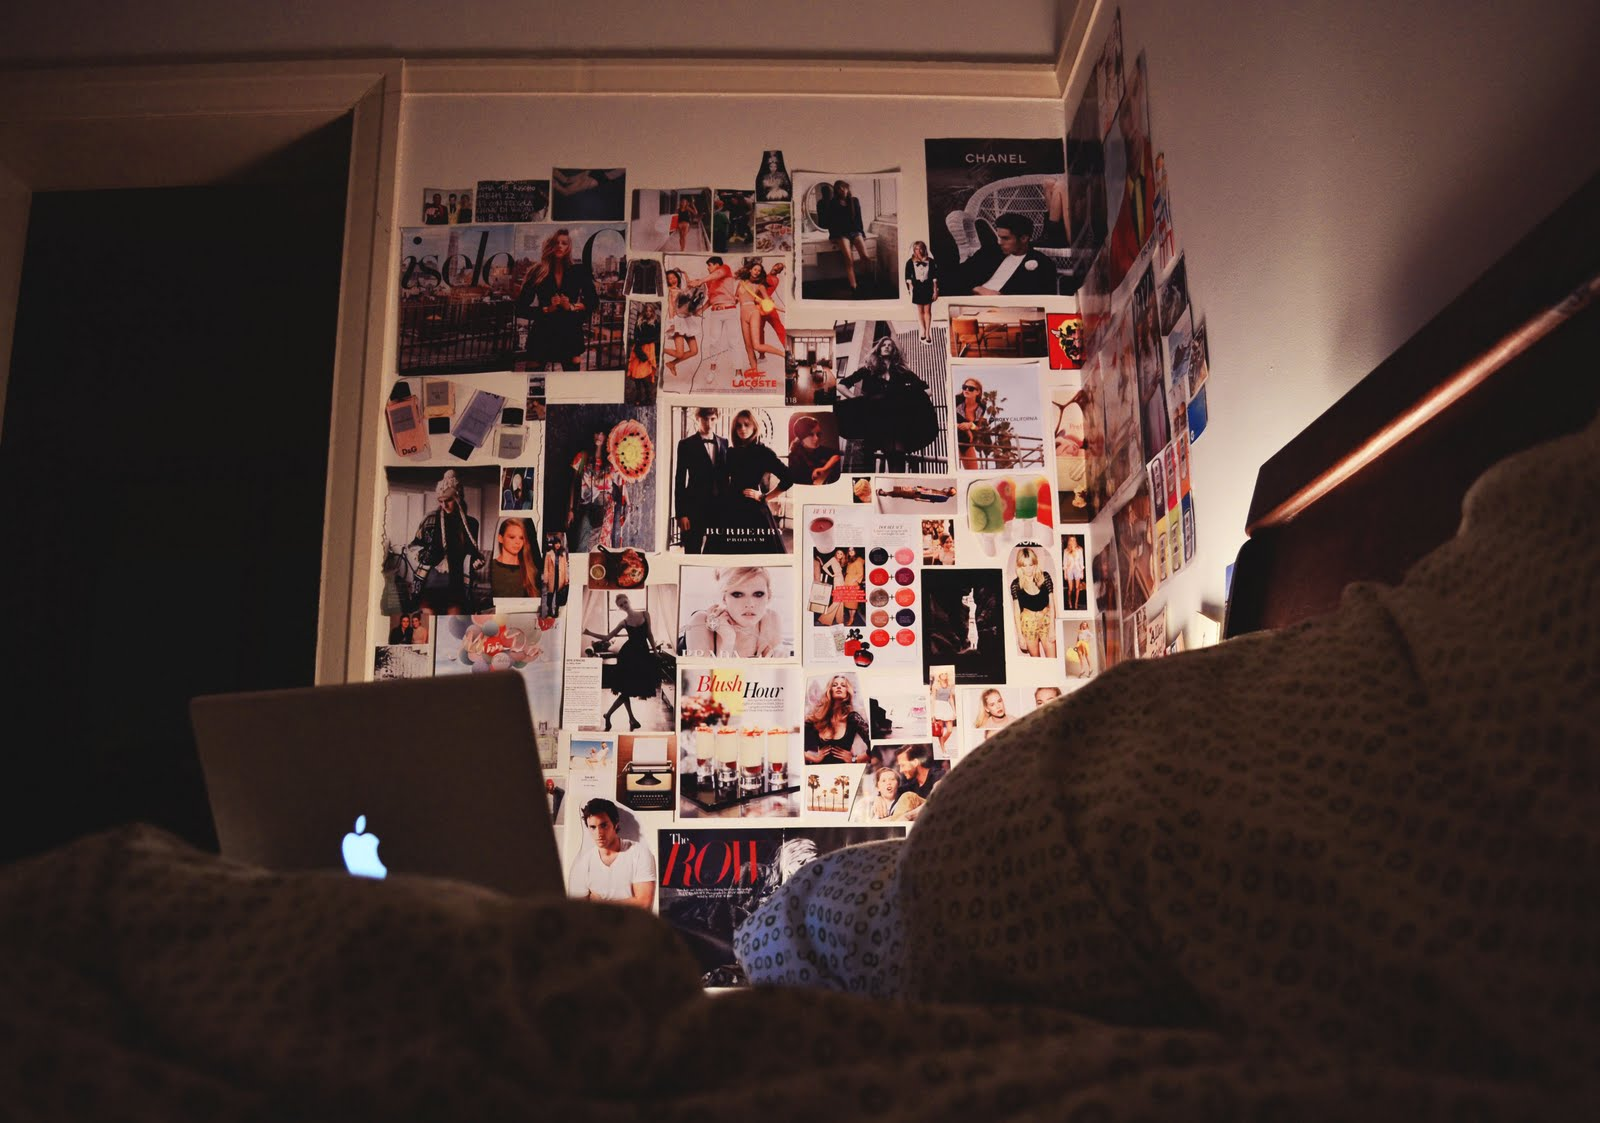 barefoot tumblr on the bedroom wall - Bedroom Wall Pictures Tumblr